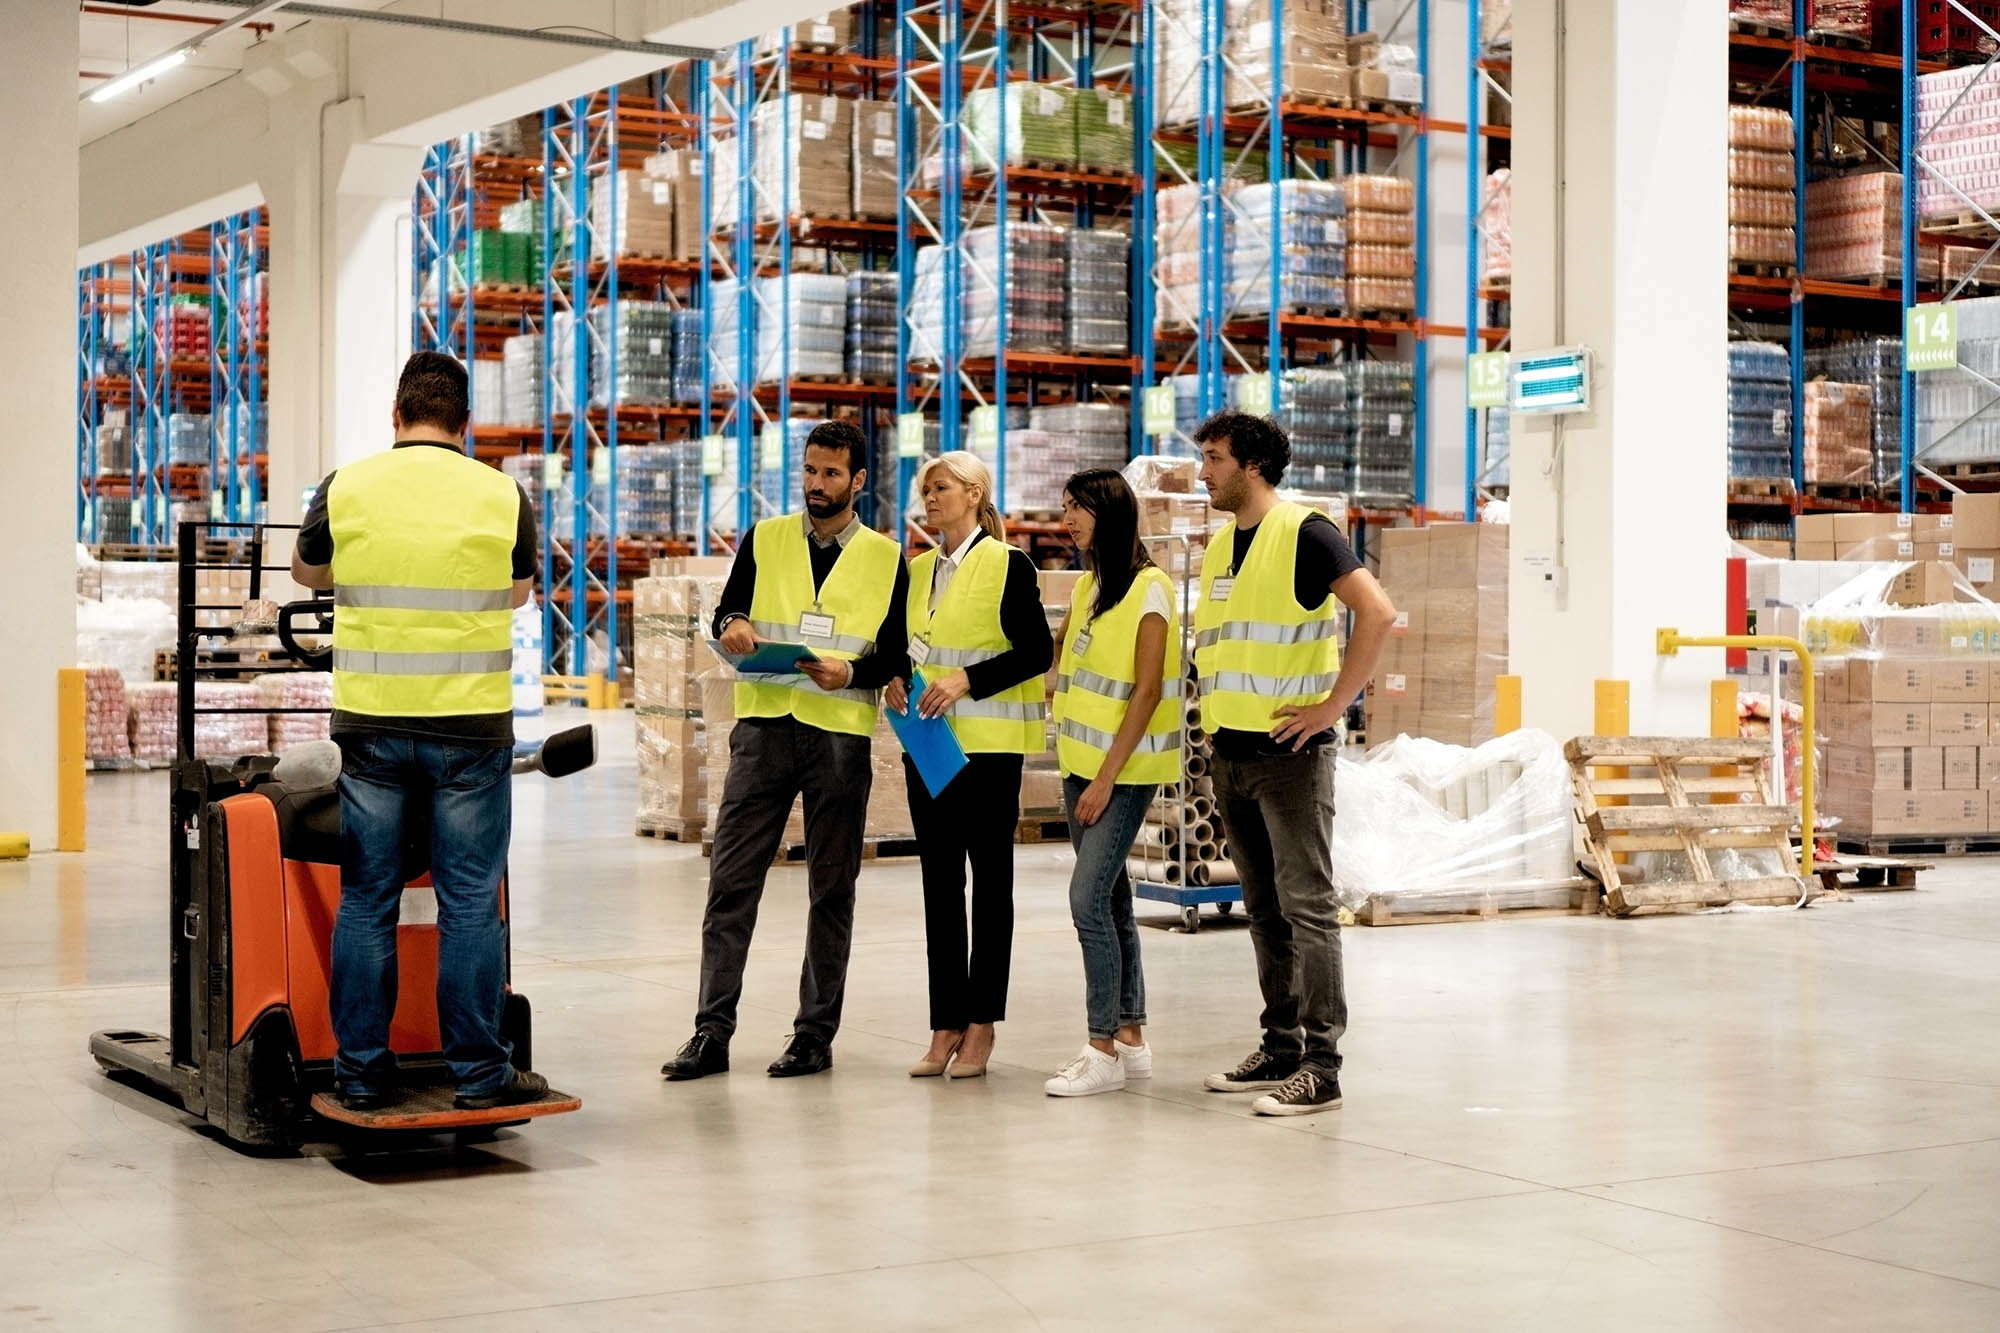 Warehouse staff learning to use forklift for proper storage management